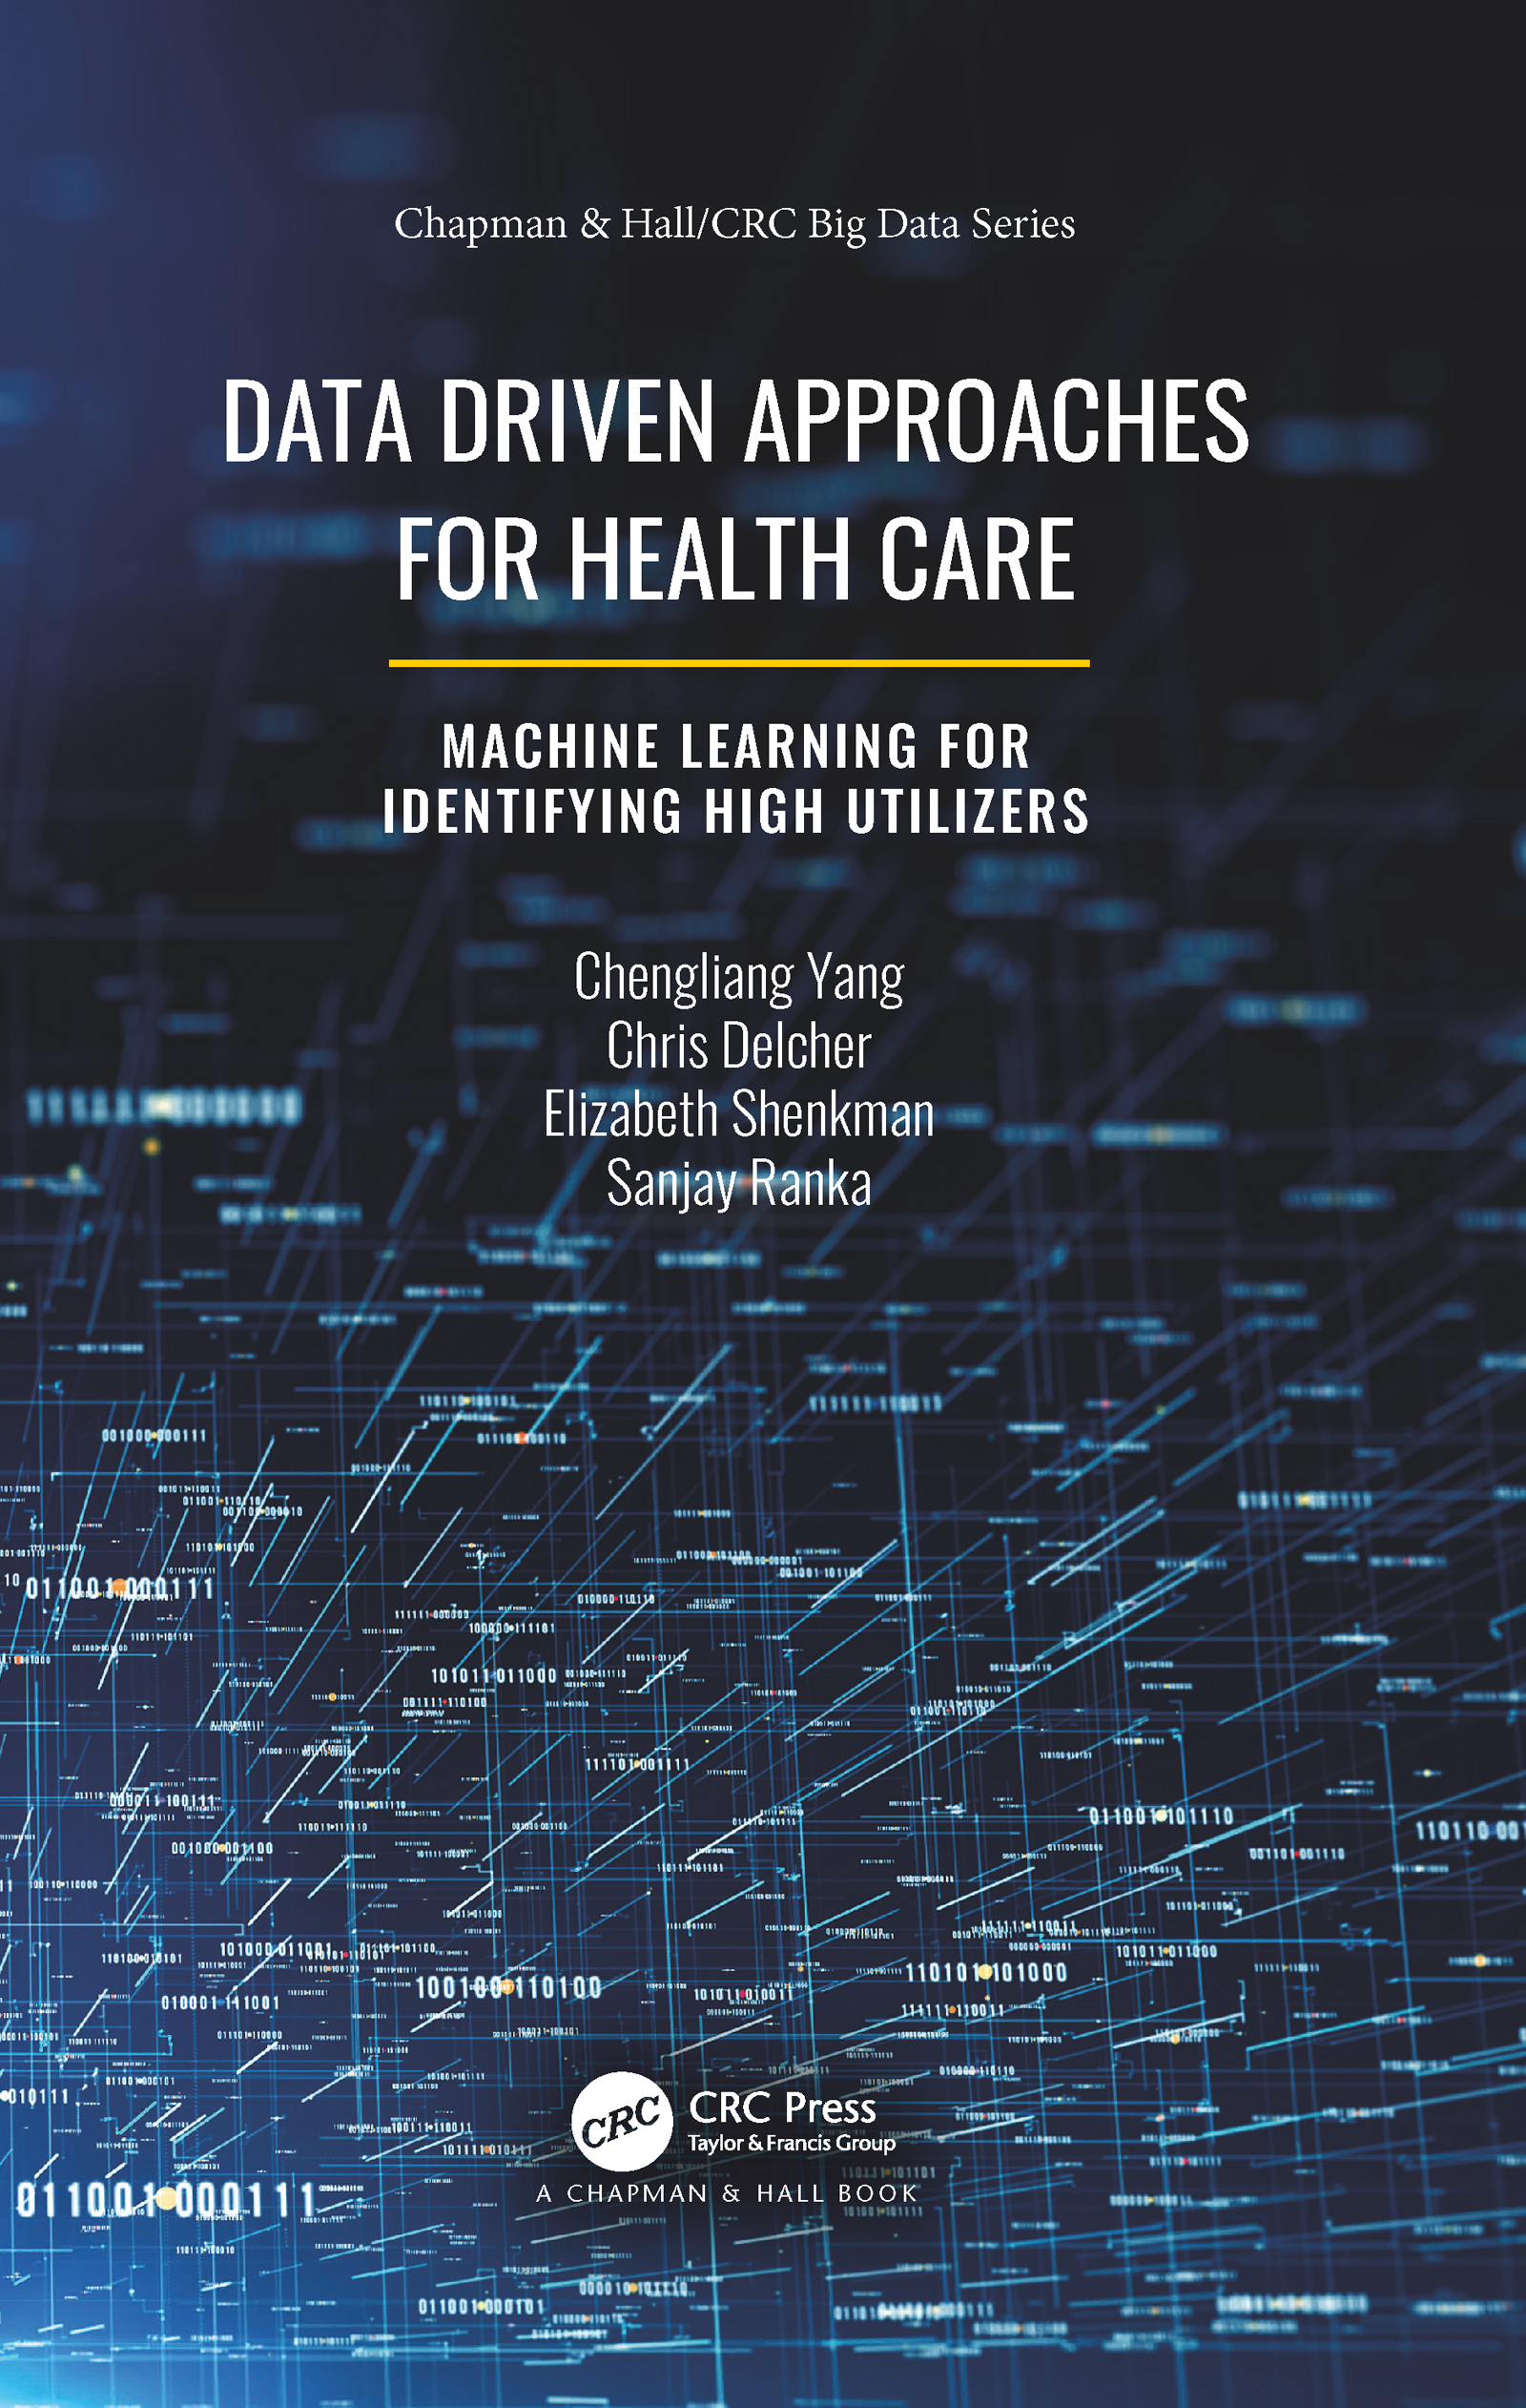 Data Driven Approaches for Healthcare